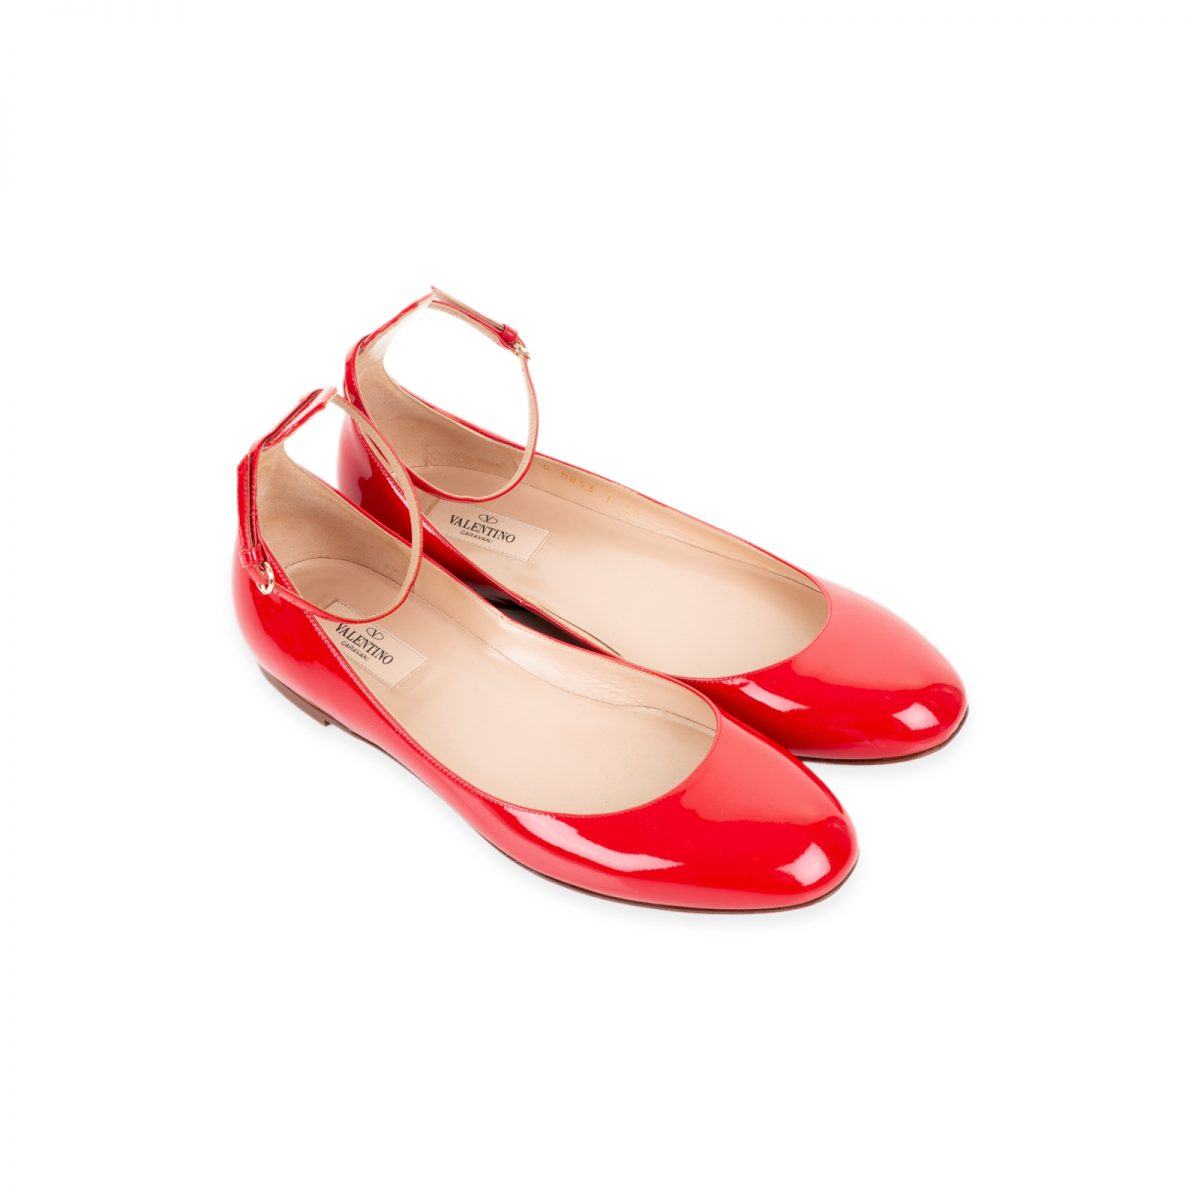 b0eb299a7 Patent Leather Ballerina Flats with Strap by Valentino - Le Dressing Monaco